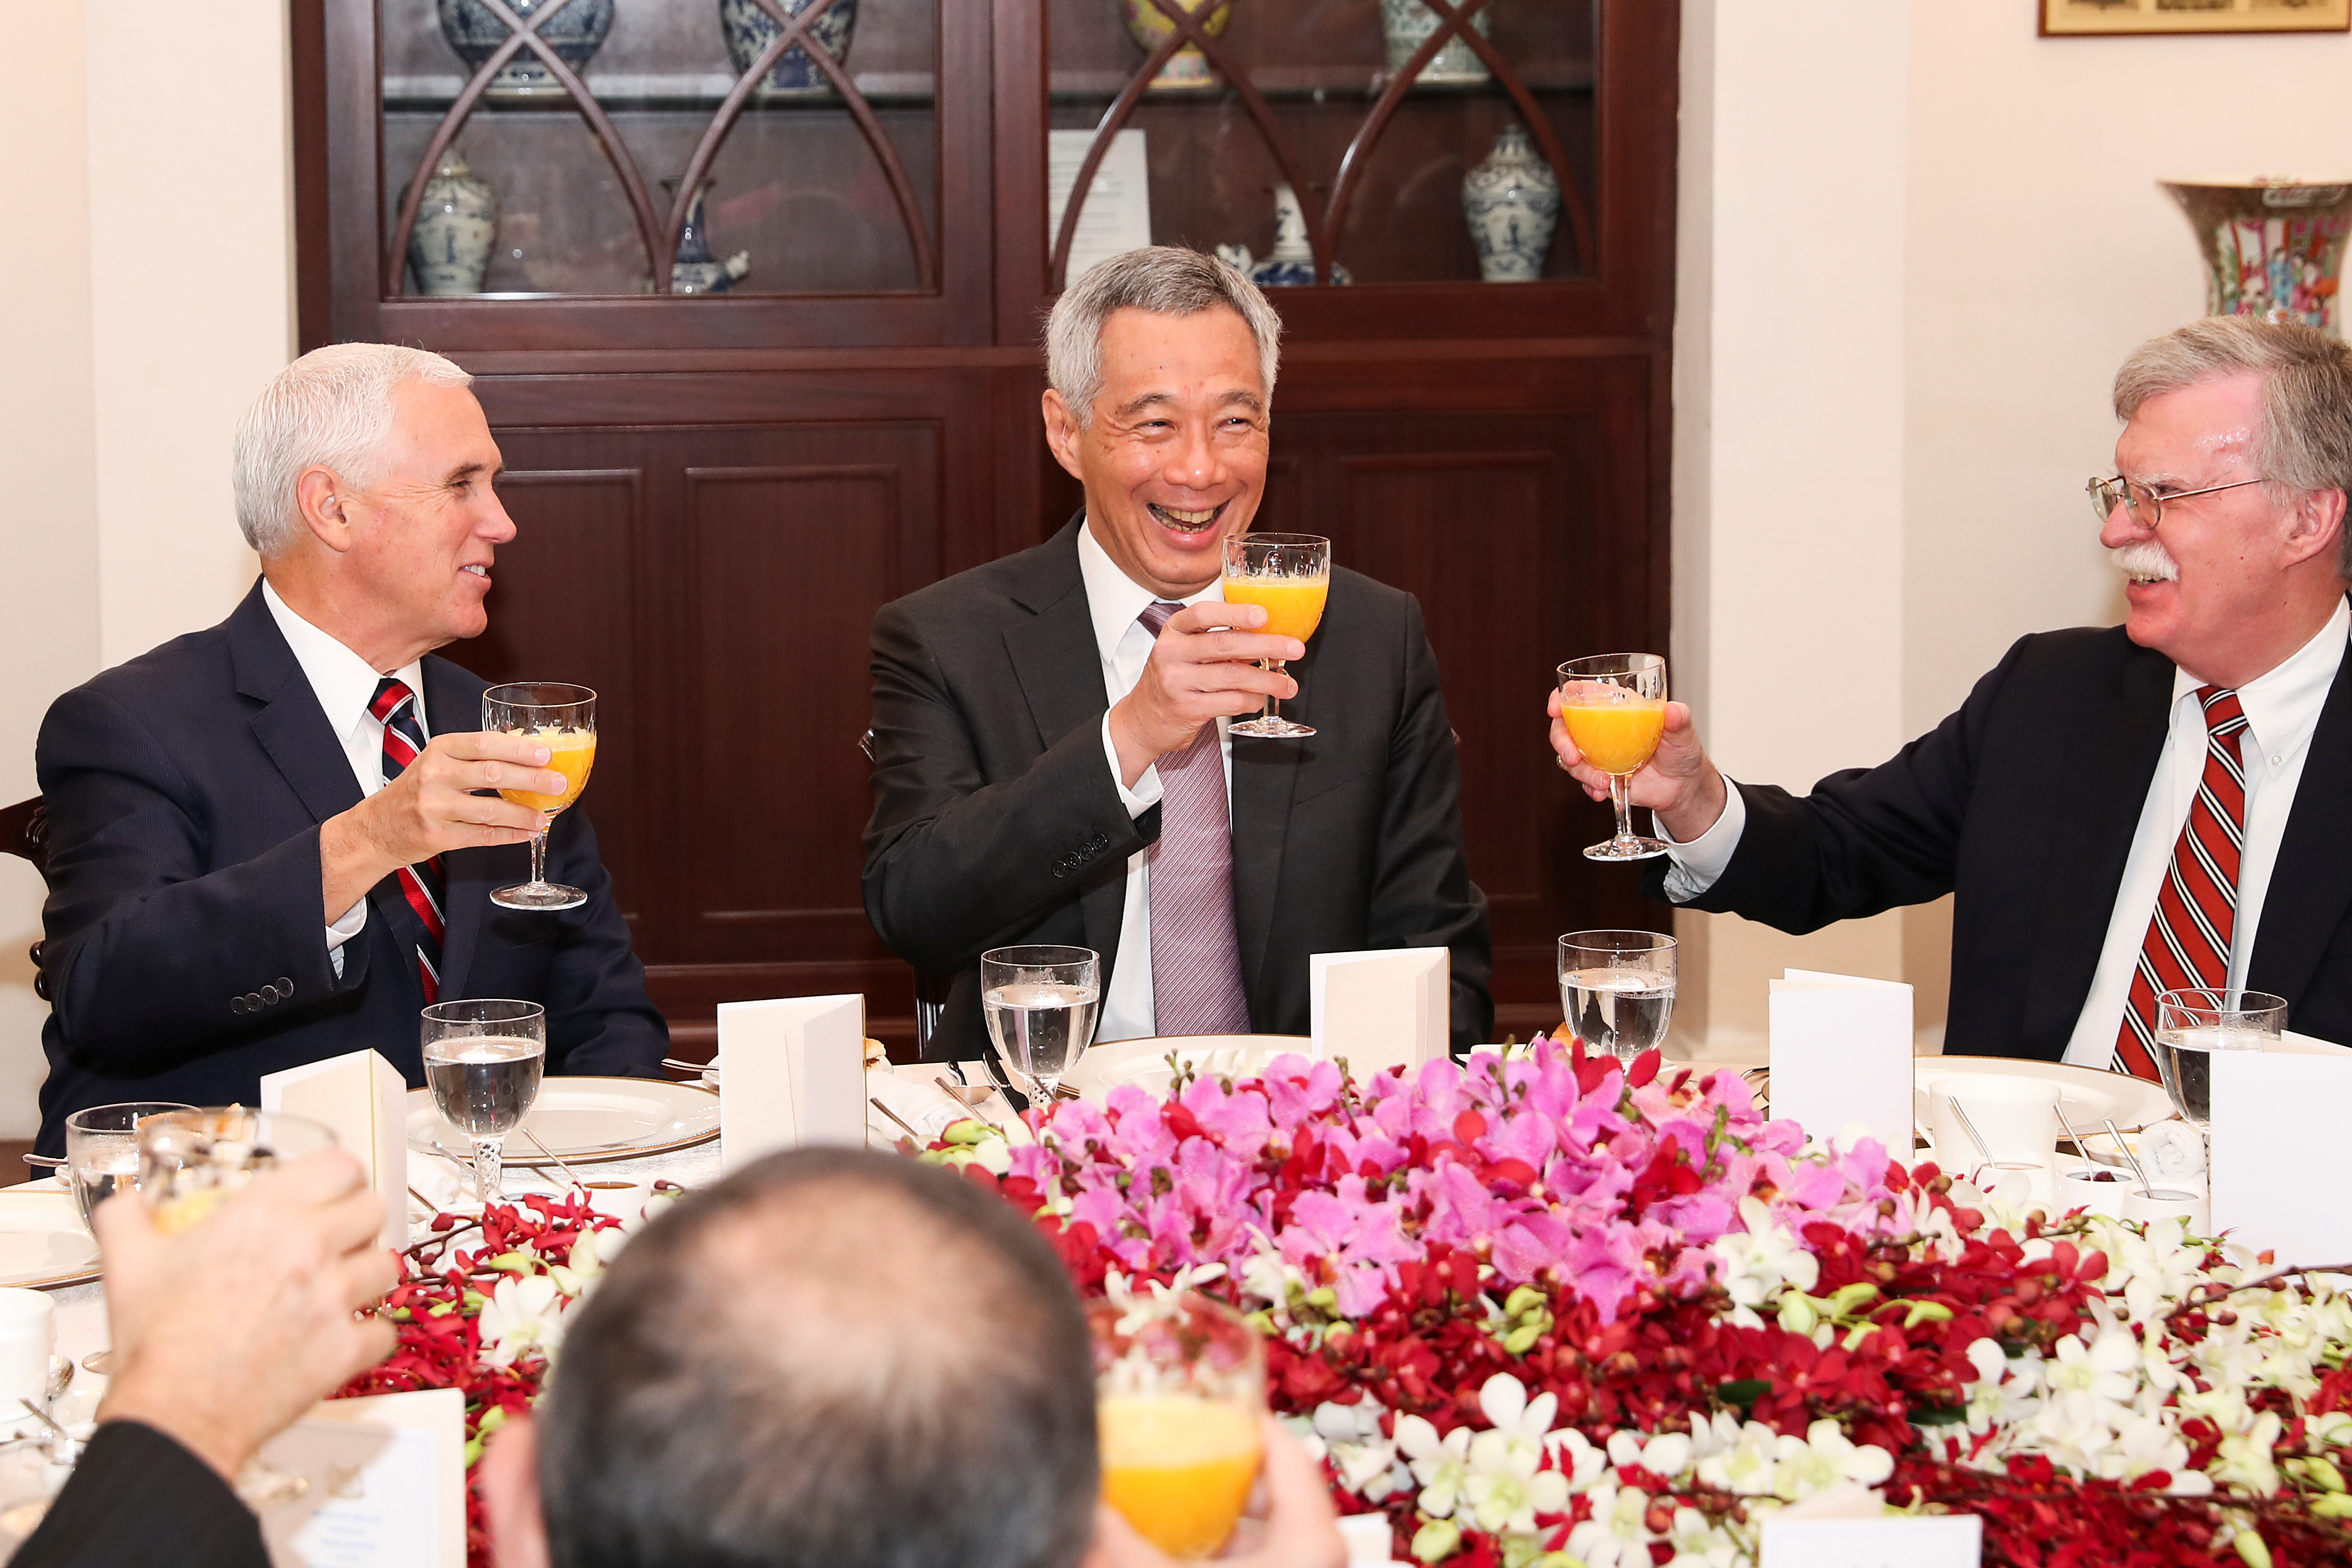 U.S. Vice President Mike Pence, left, and U.S. National security adviser John Bolton, right, attend a working breakfast hosted by Singaporean Prime Minister Lee Hsien Loong at the Istana, or Presidential Palace, in Singapore, Nov. 16, 2018.